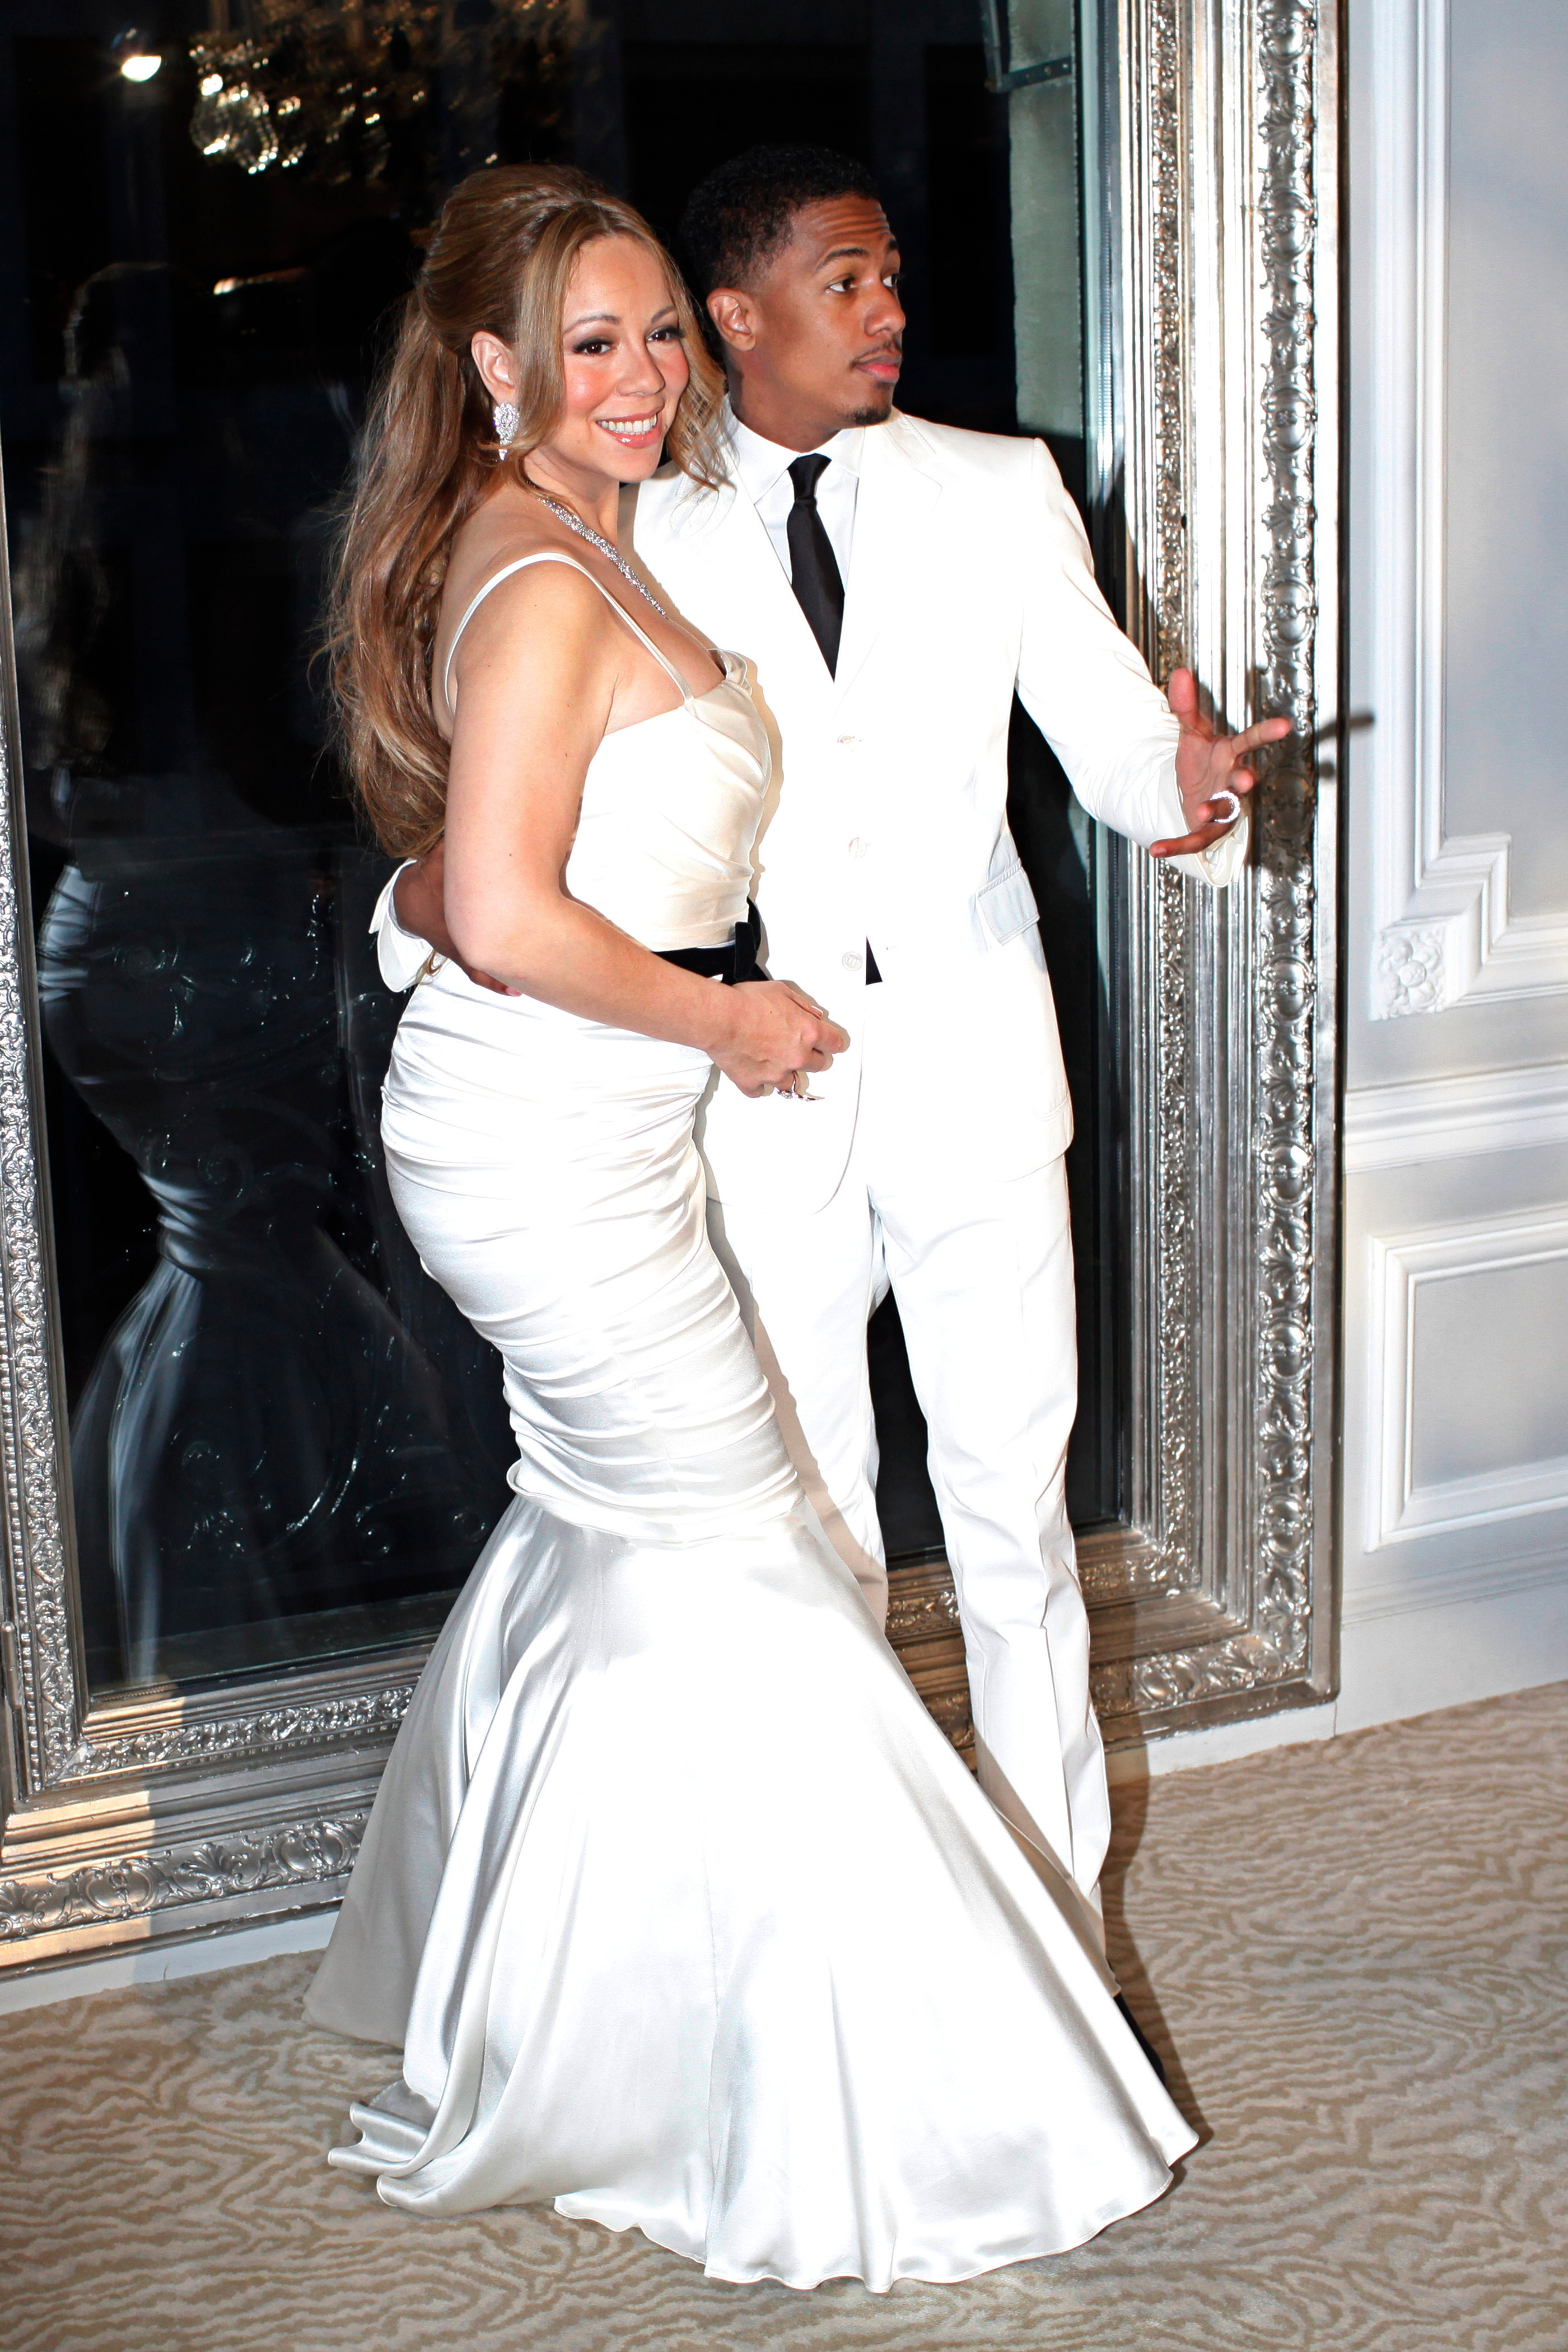 Mariah Carey and Nick Cannon pose after renewing their vows in Paris on April 27, 2012.